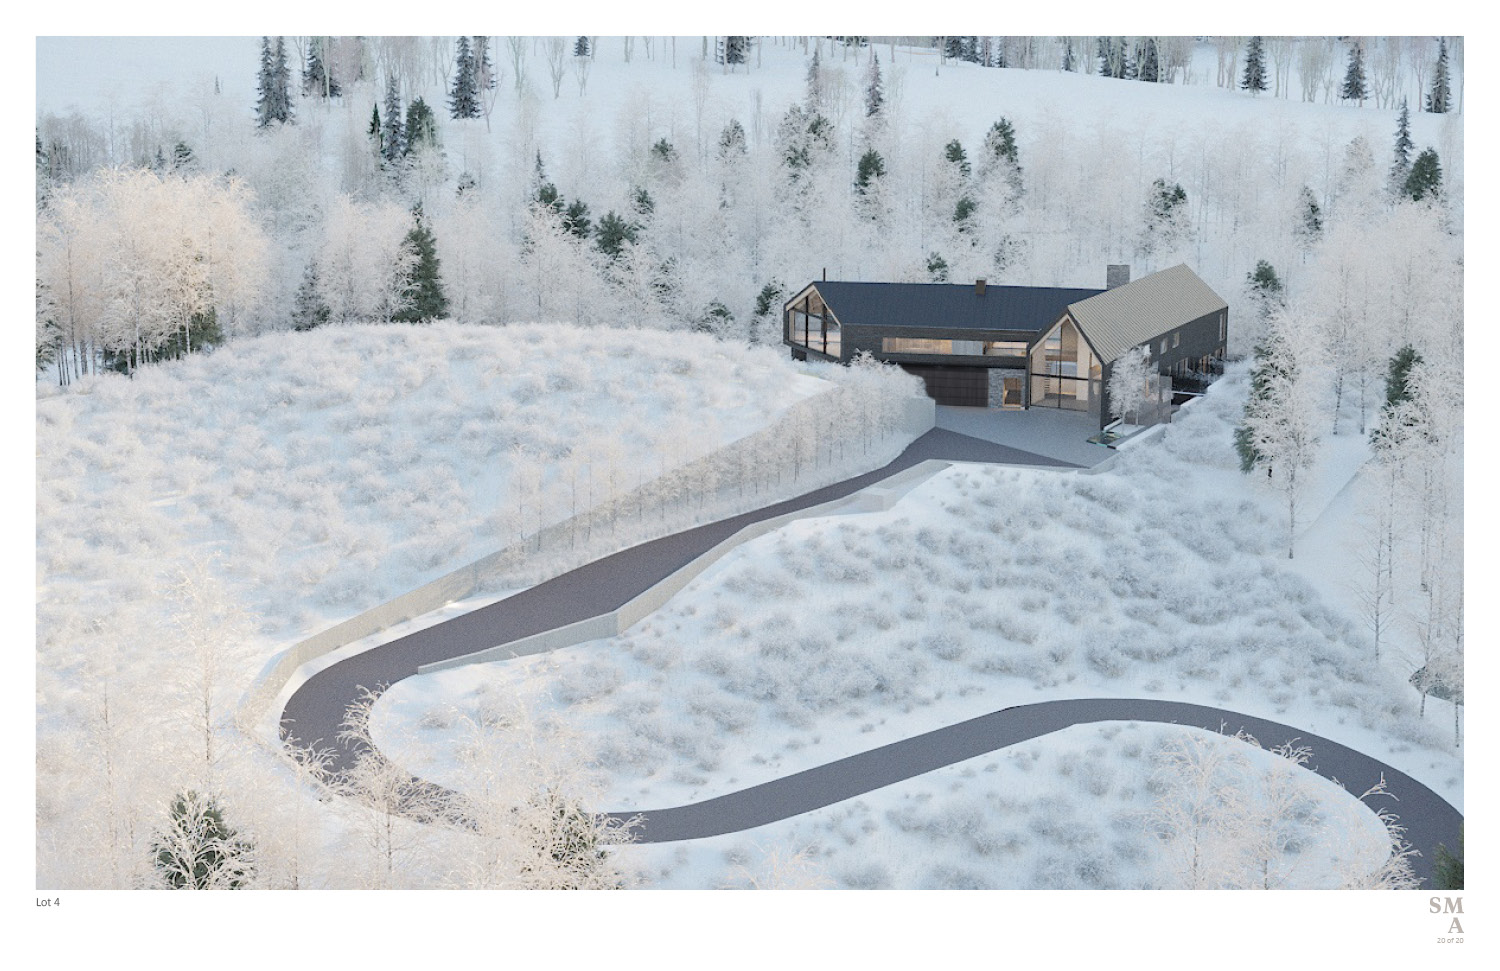 Lot 4 - Entry sequence & Driveway approach. SMA Design Team & Consultants}